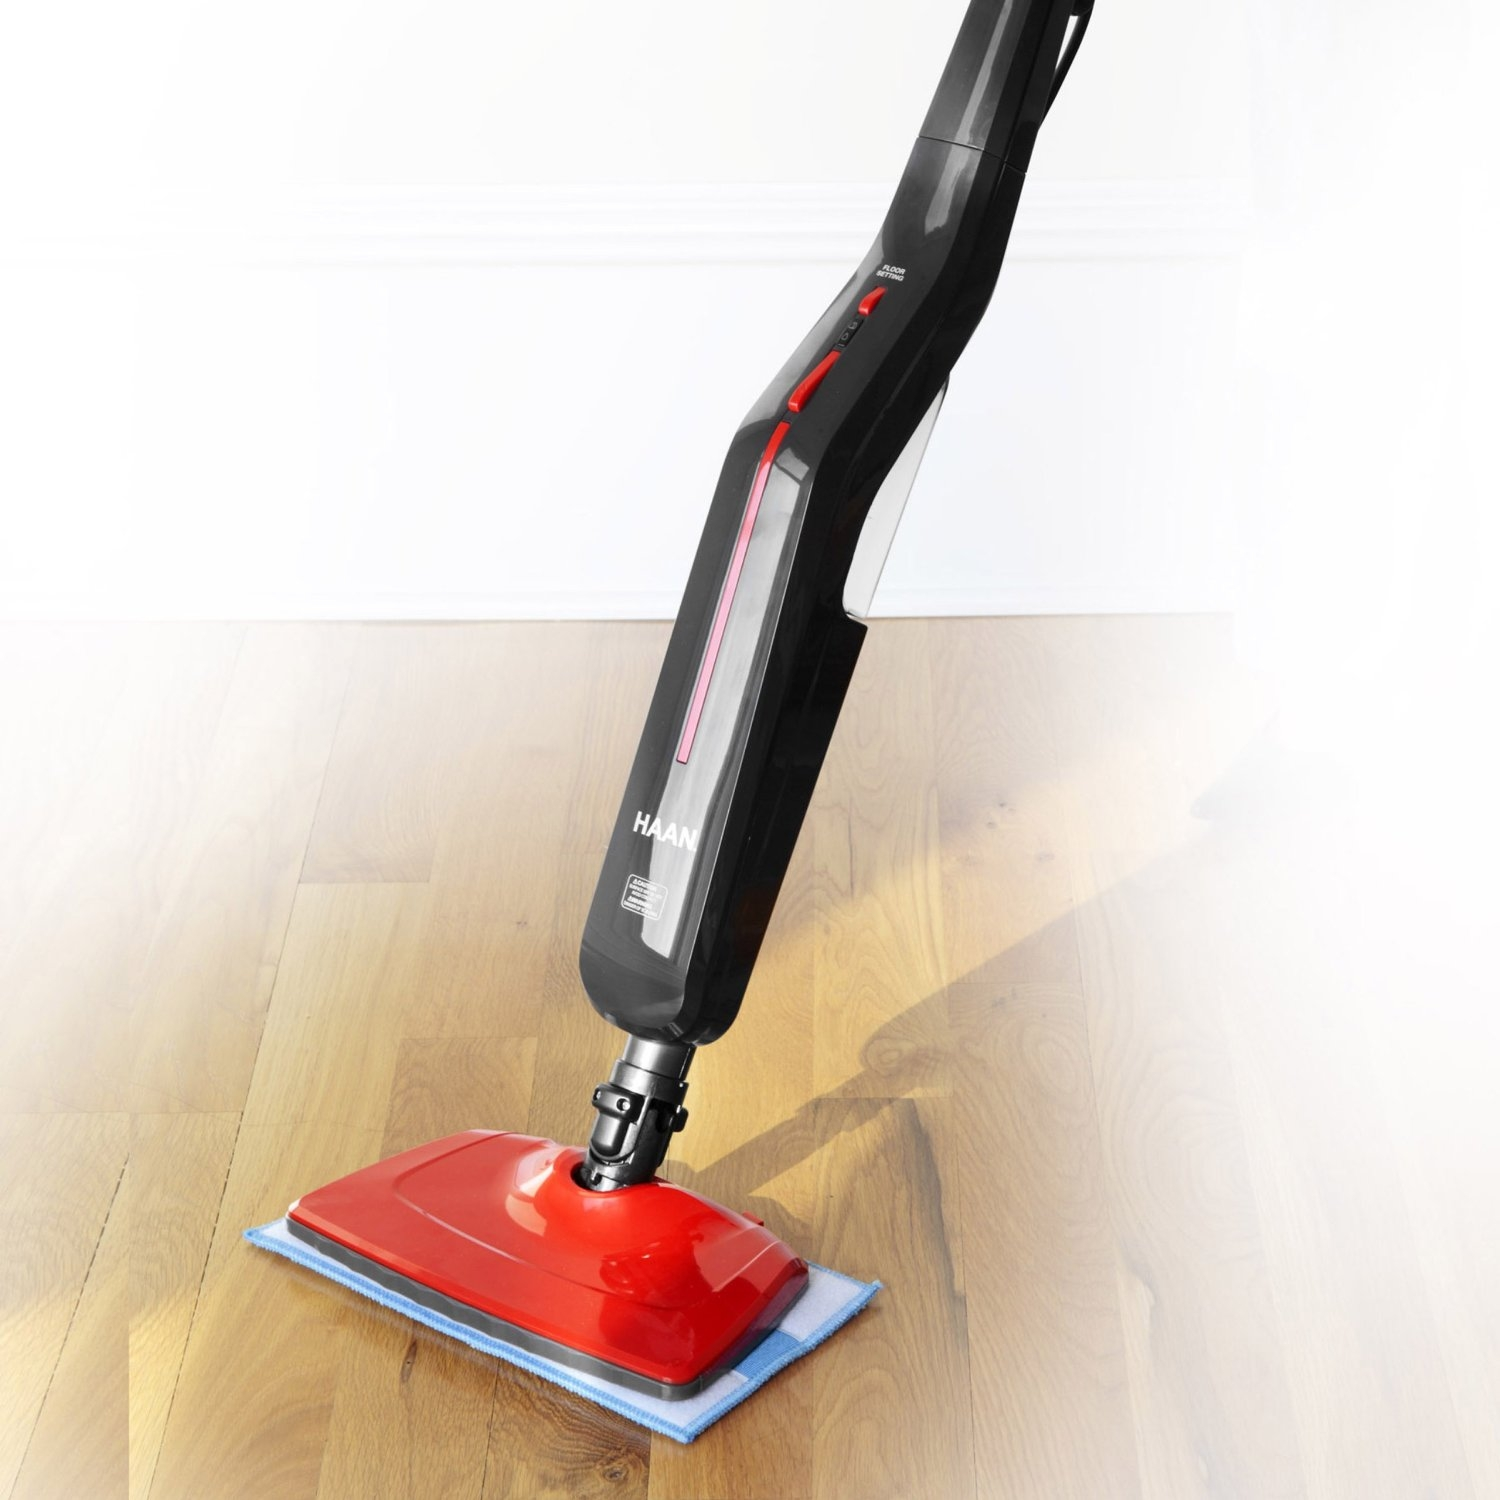 Permalink to Best Steam Mop For Wood Floors 2017